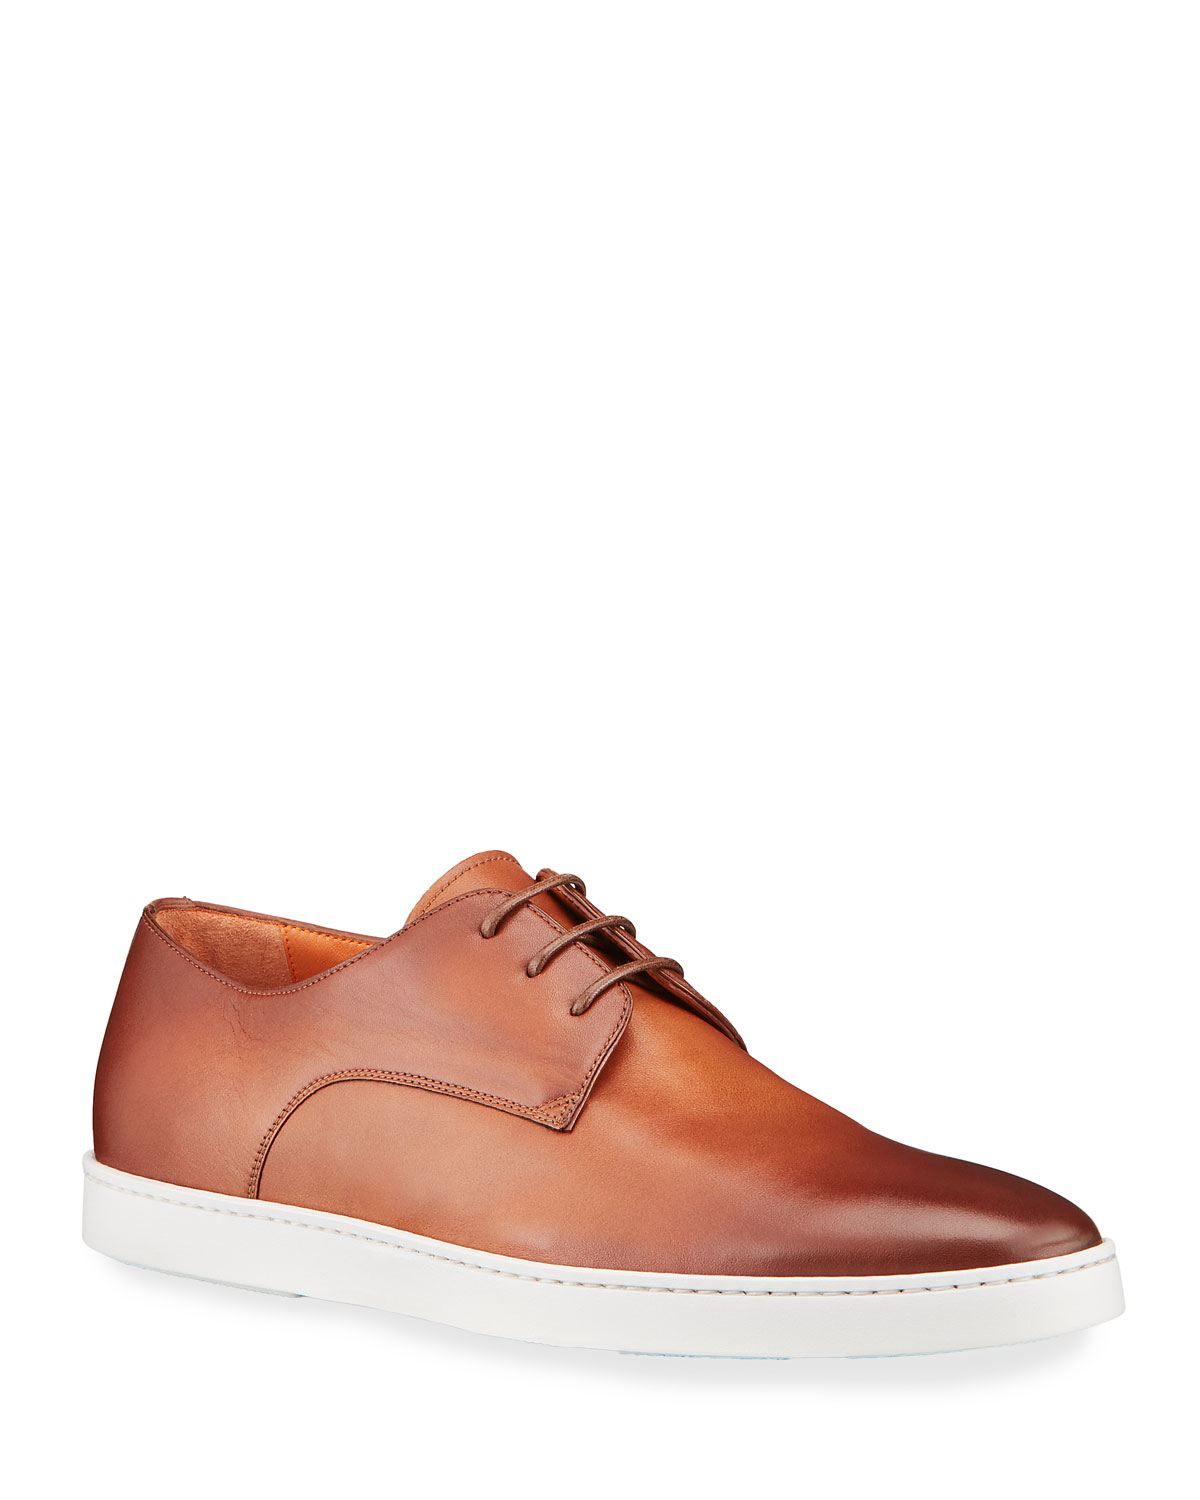 Men's Doyle Leather Derby Sneakers